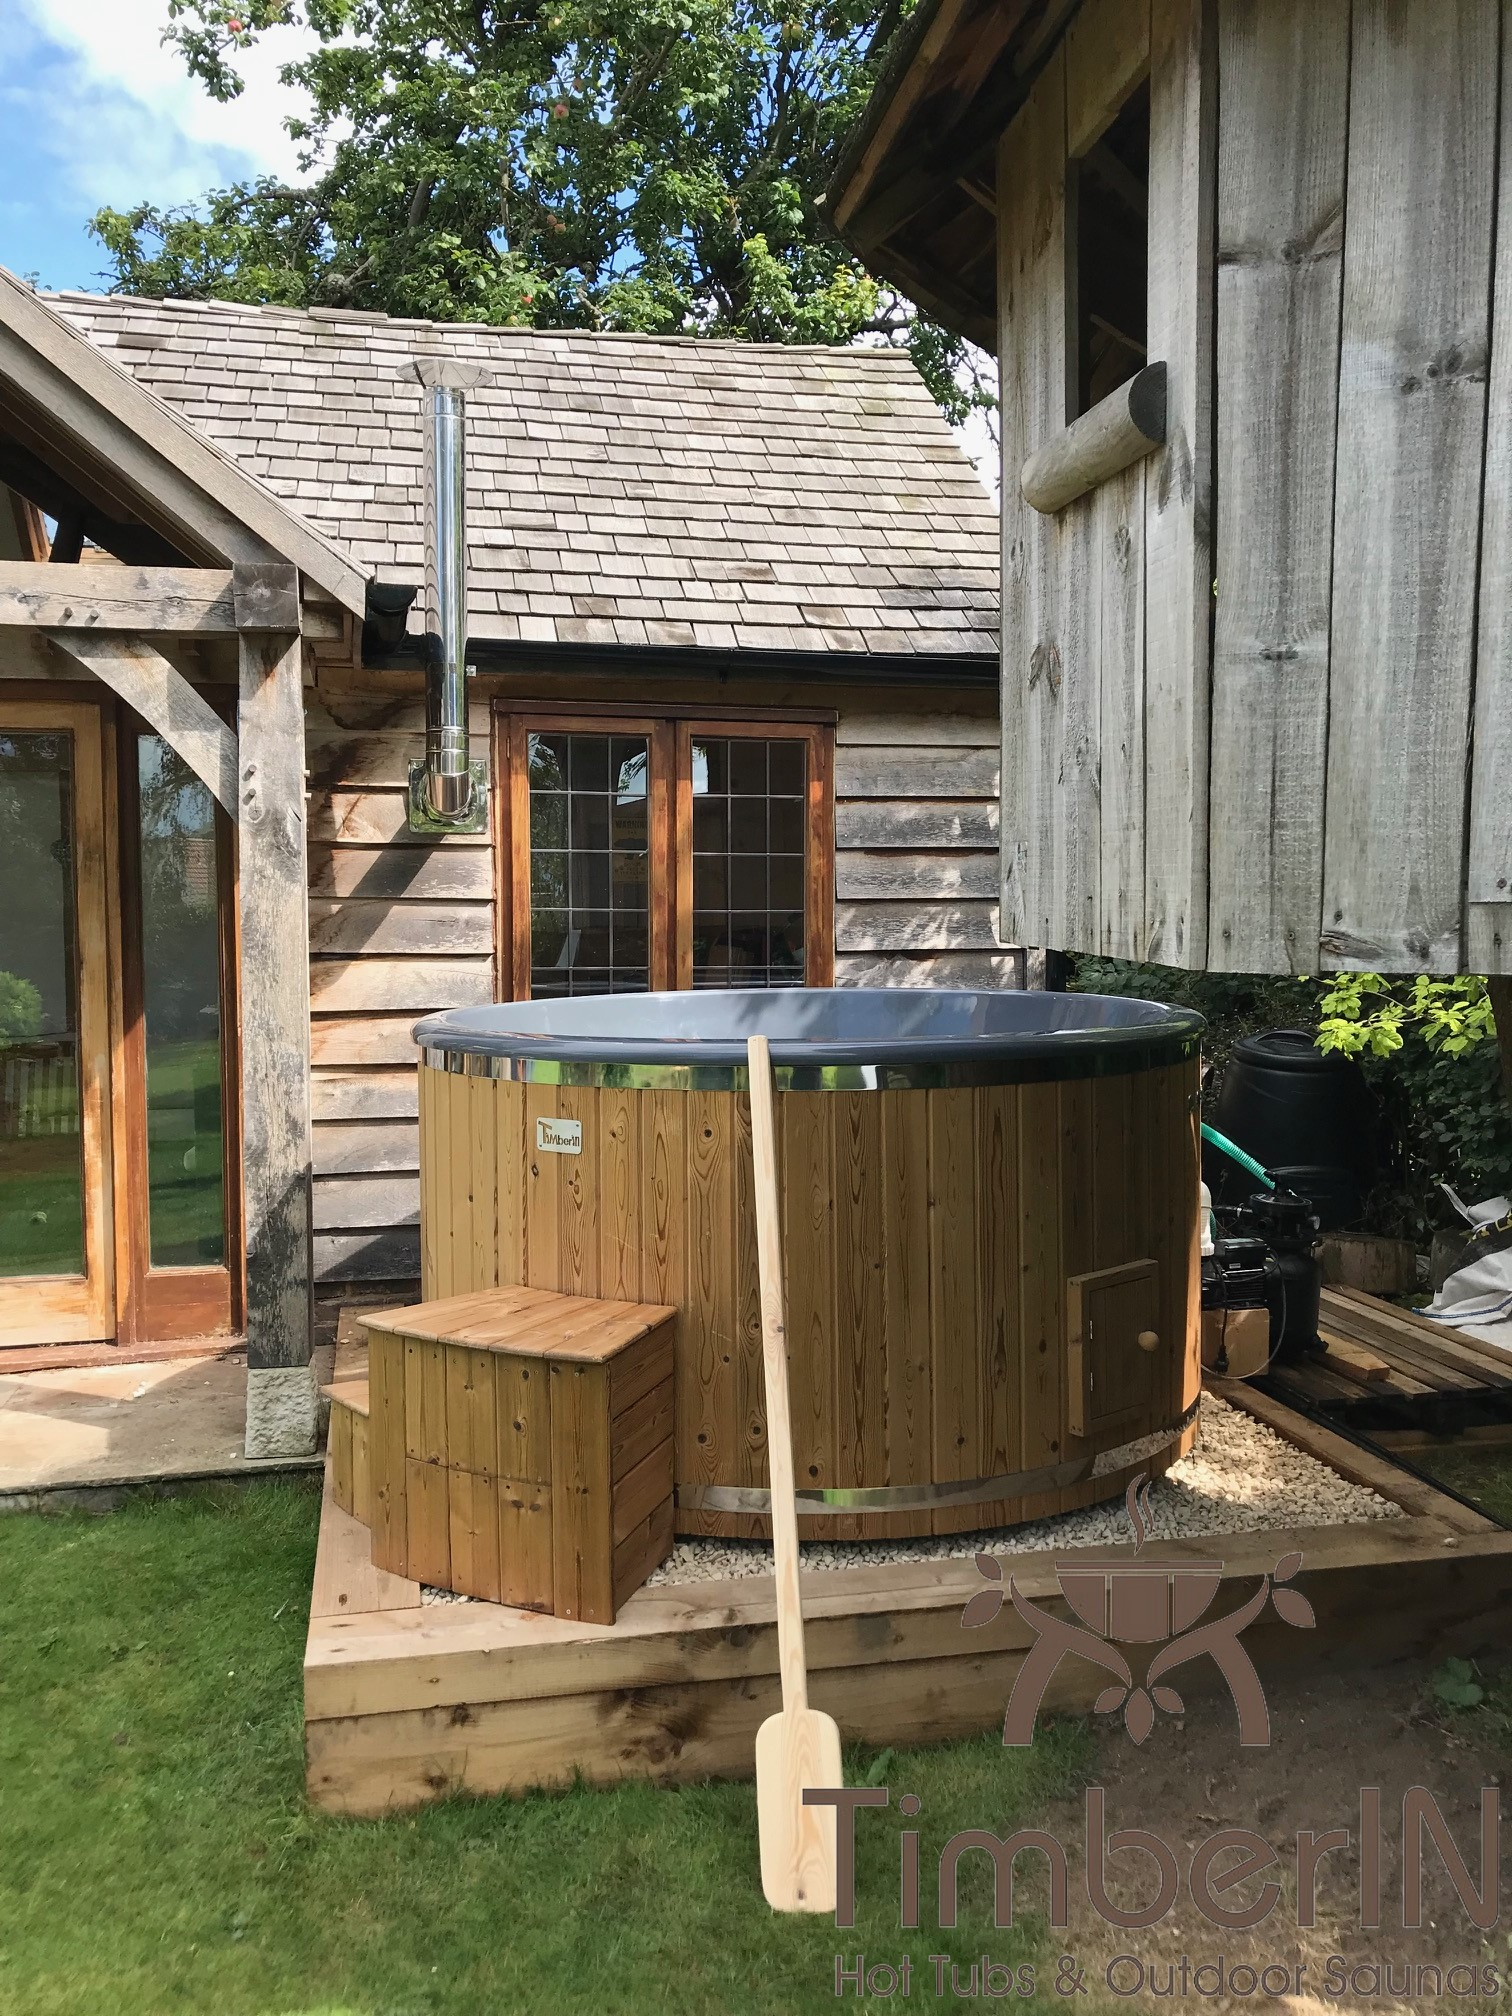 6 8 person outdoor hot tub with external heater Lawrence Wetherby United Kingdom 2